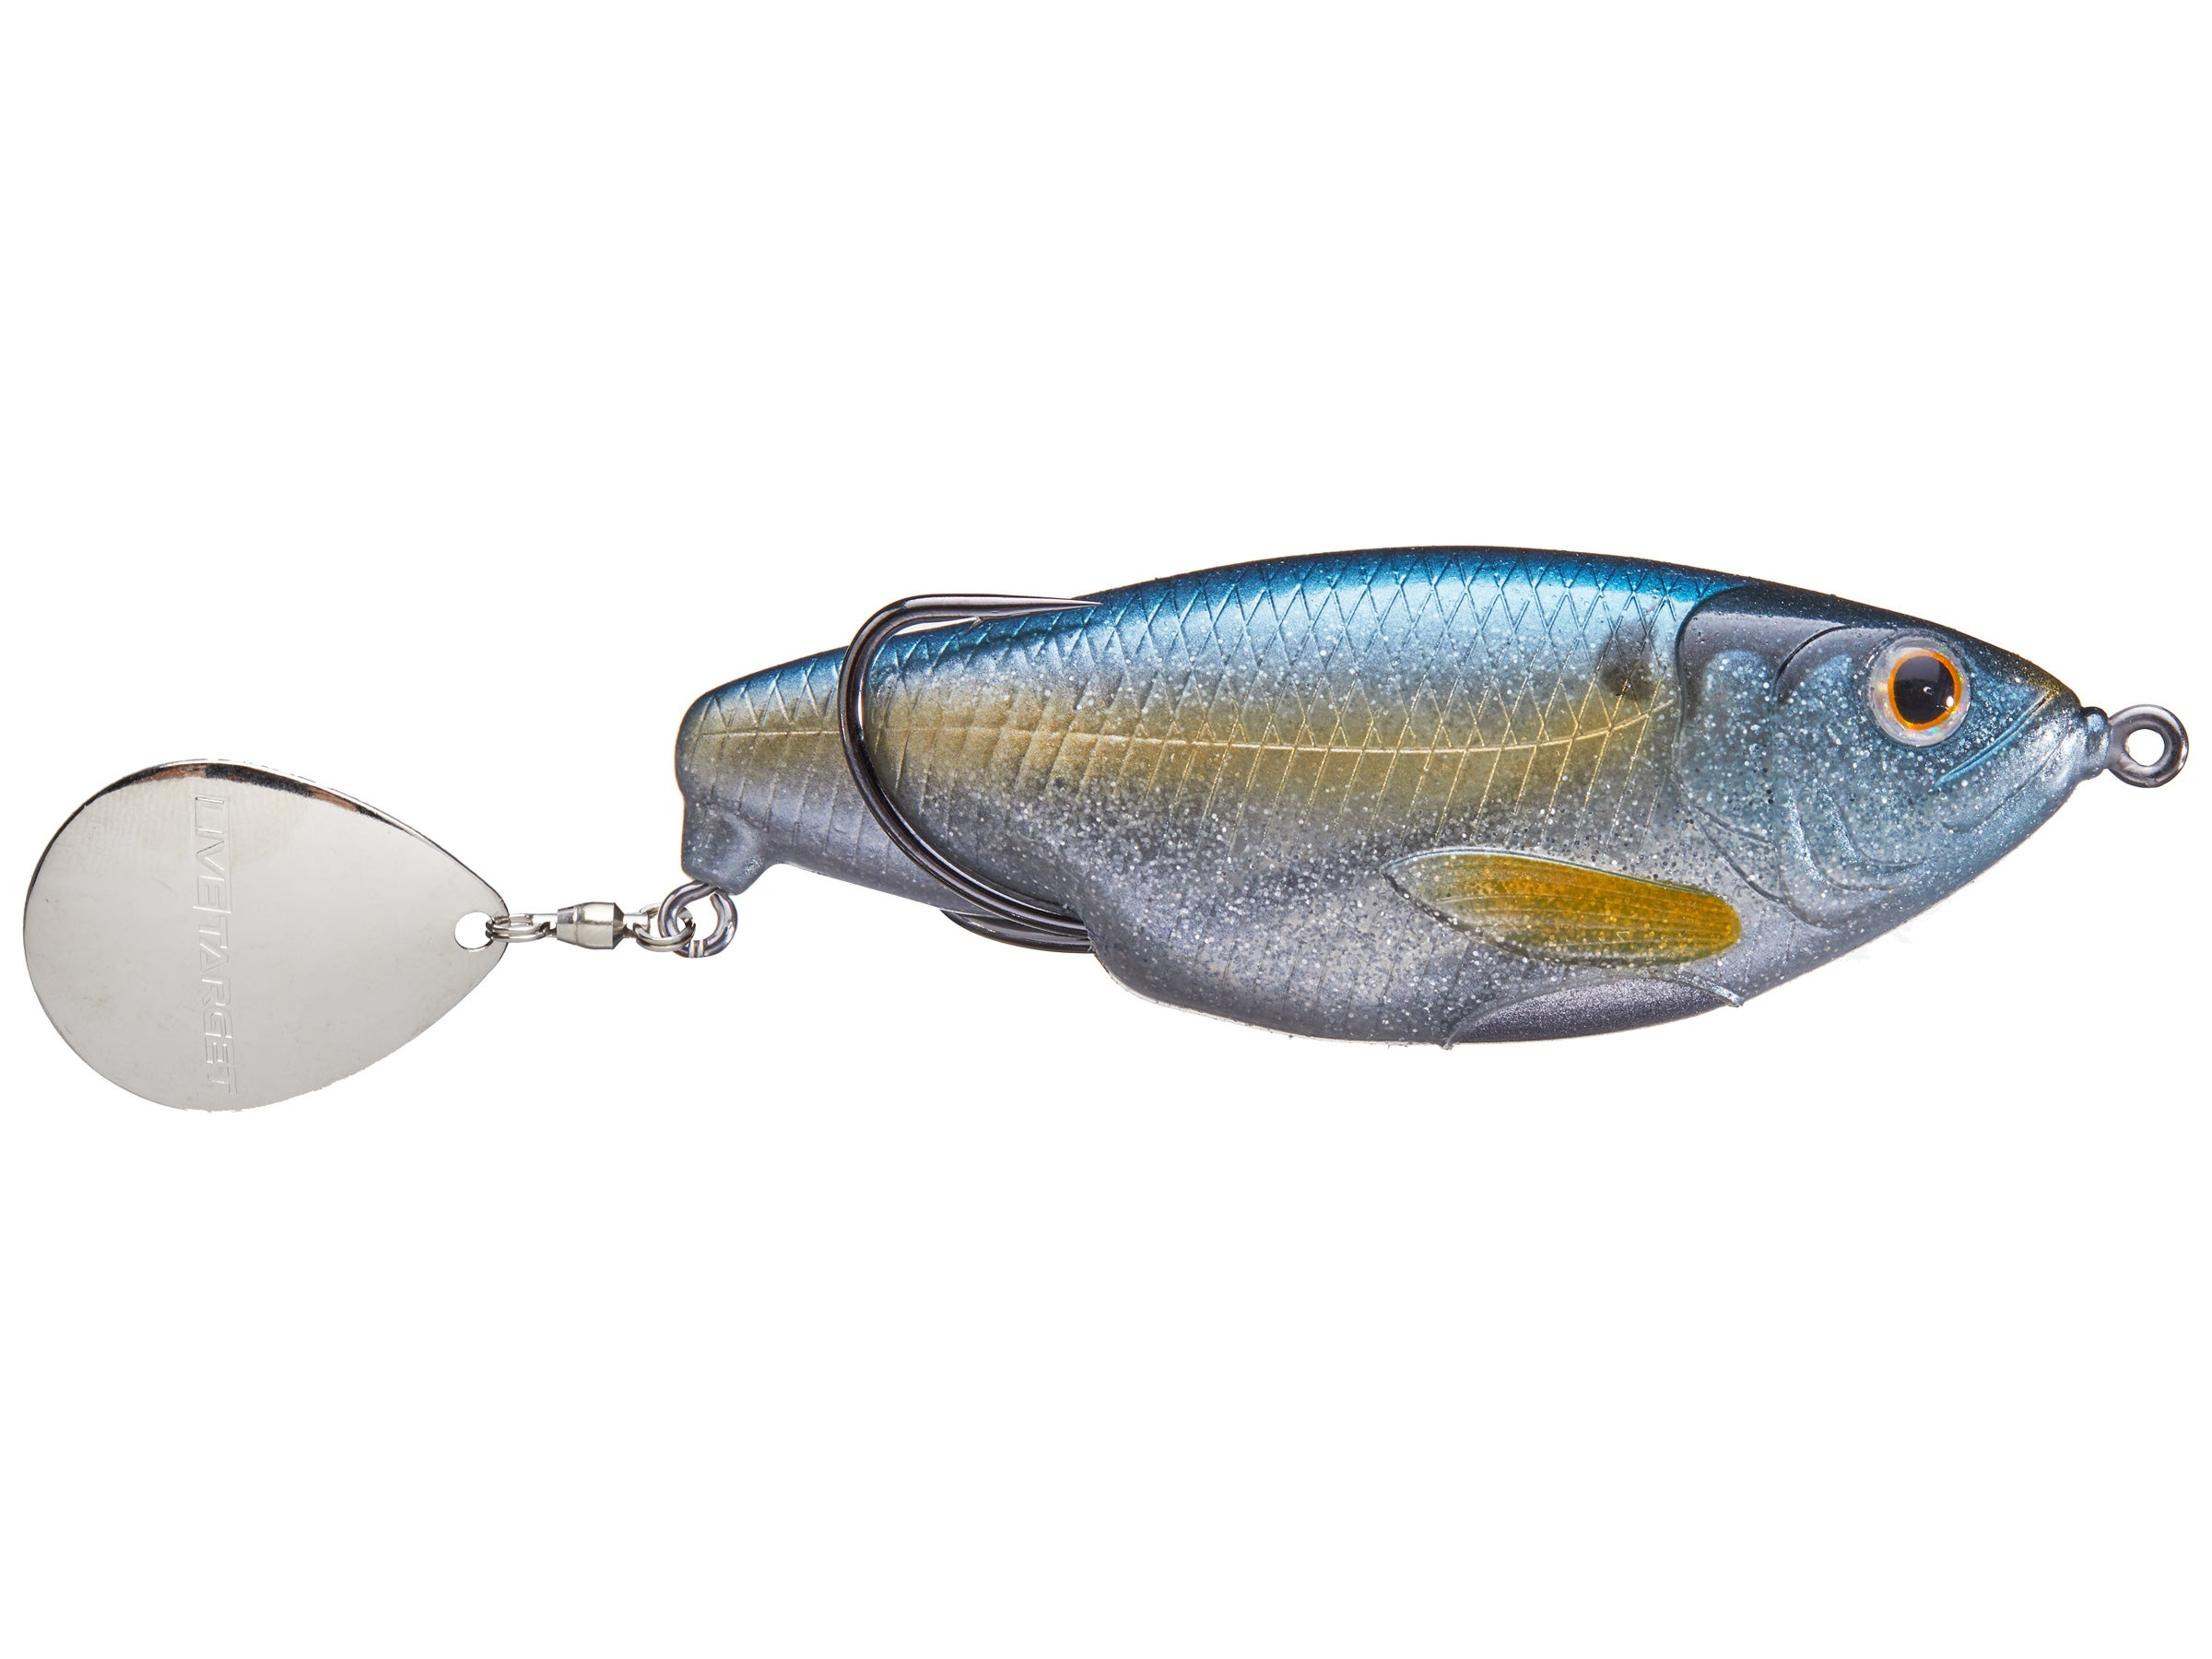 LiveTarget Lures SCH70T157 Commotion Shad Hard Bait Topwater Fishing Lure